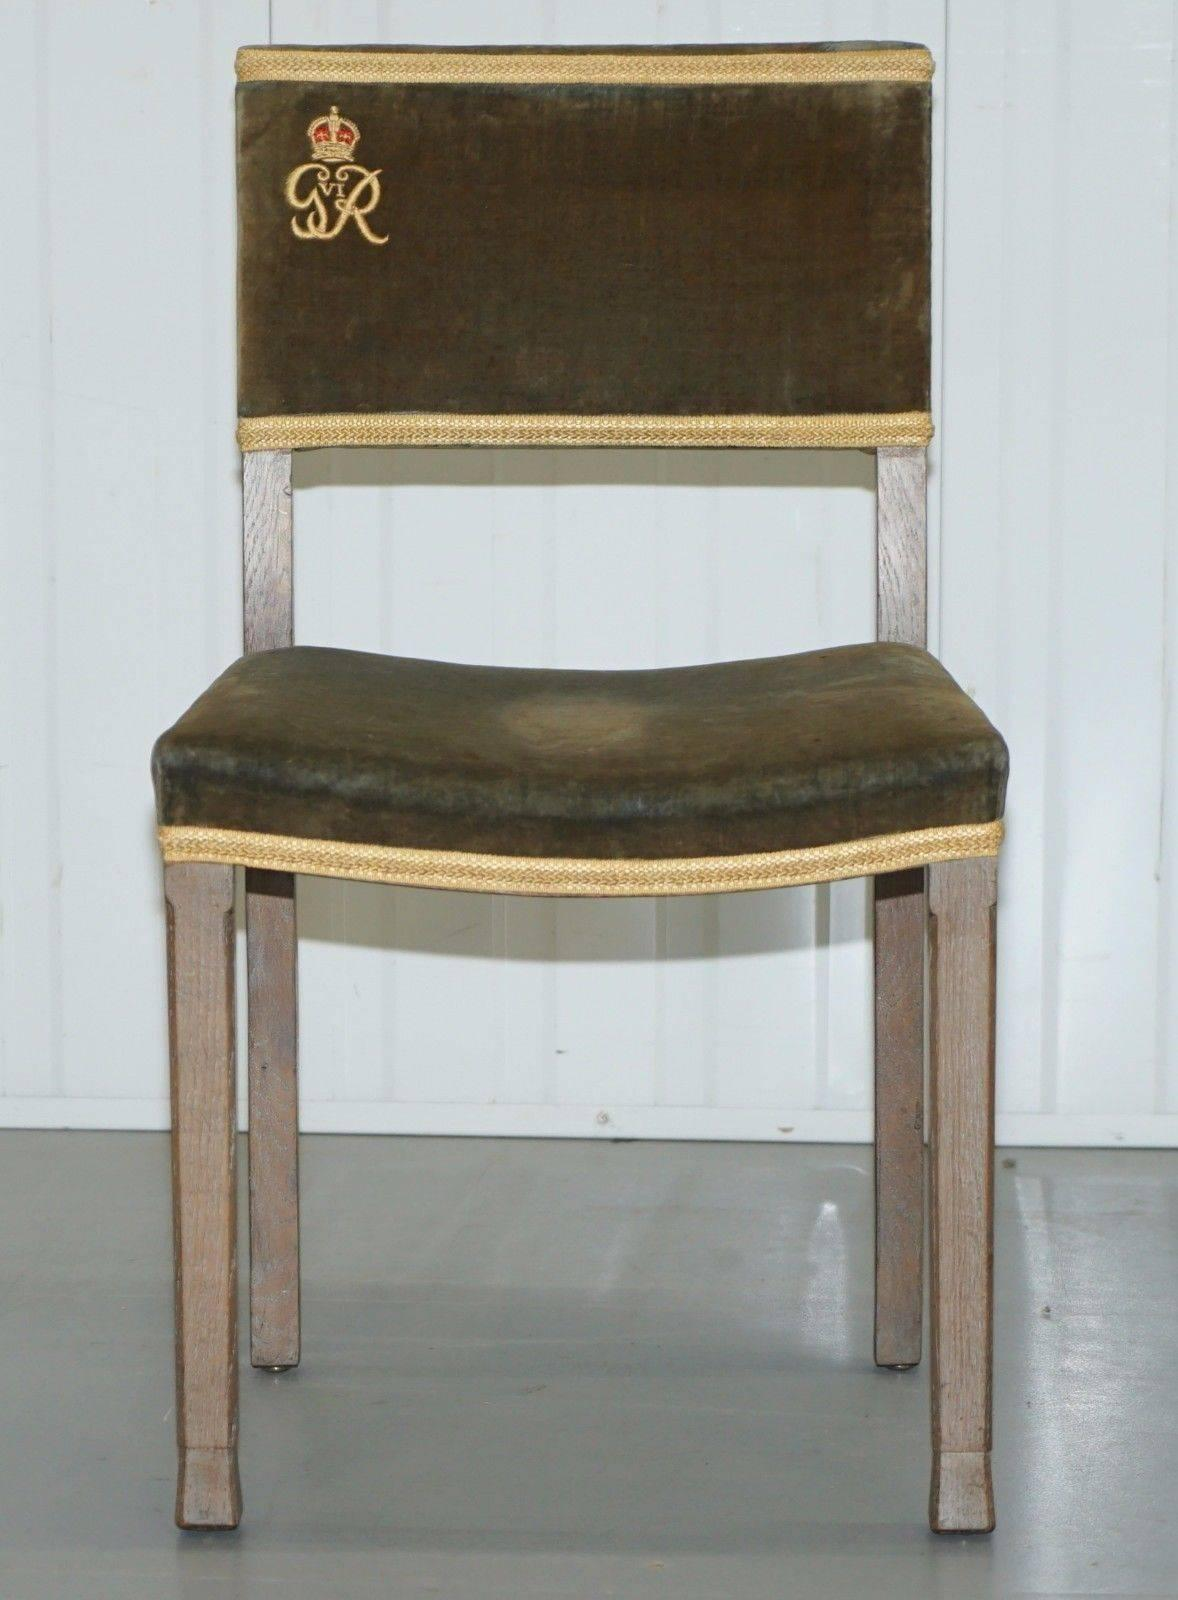 British Exceptional 1937 King George VI Coronation Chair And Stool Fully  Stamped For Sale